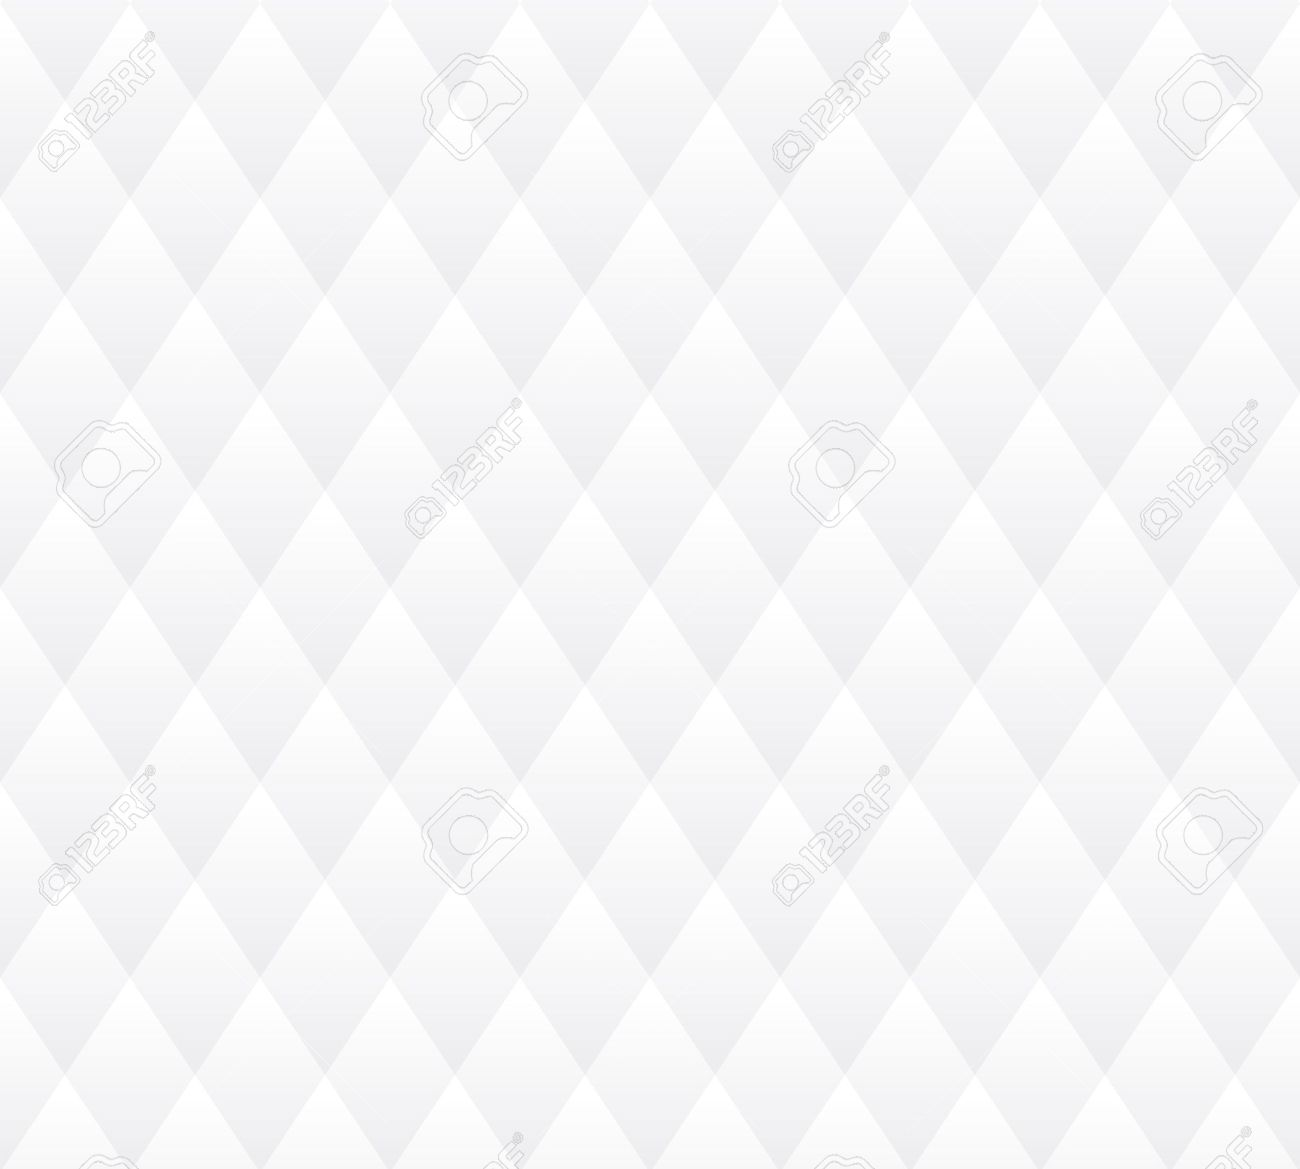 White Texture Seamless Background Seamless Background White And